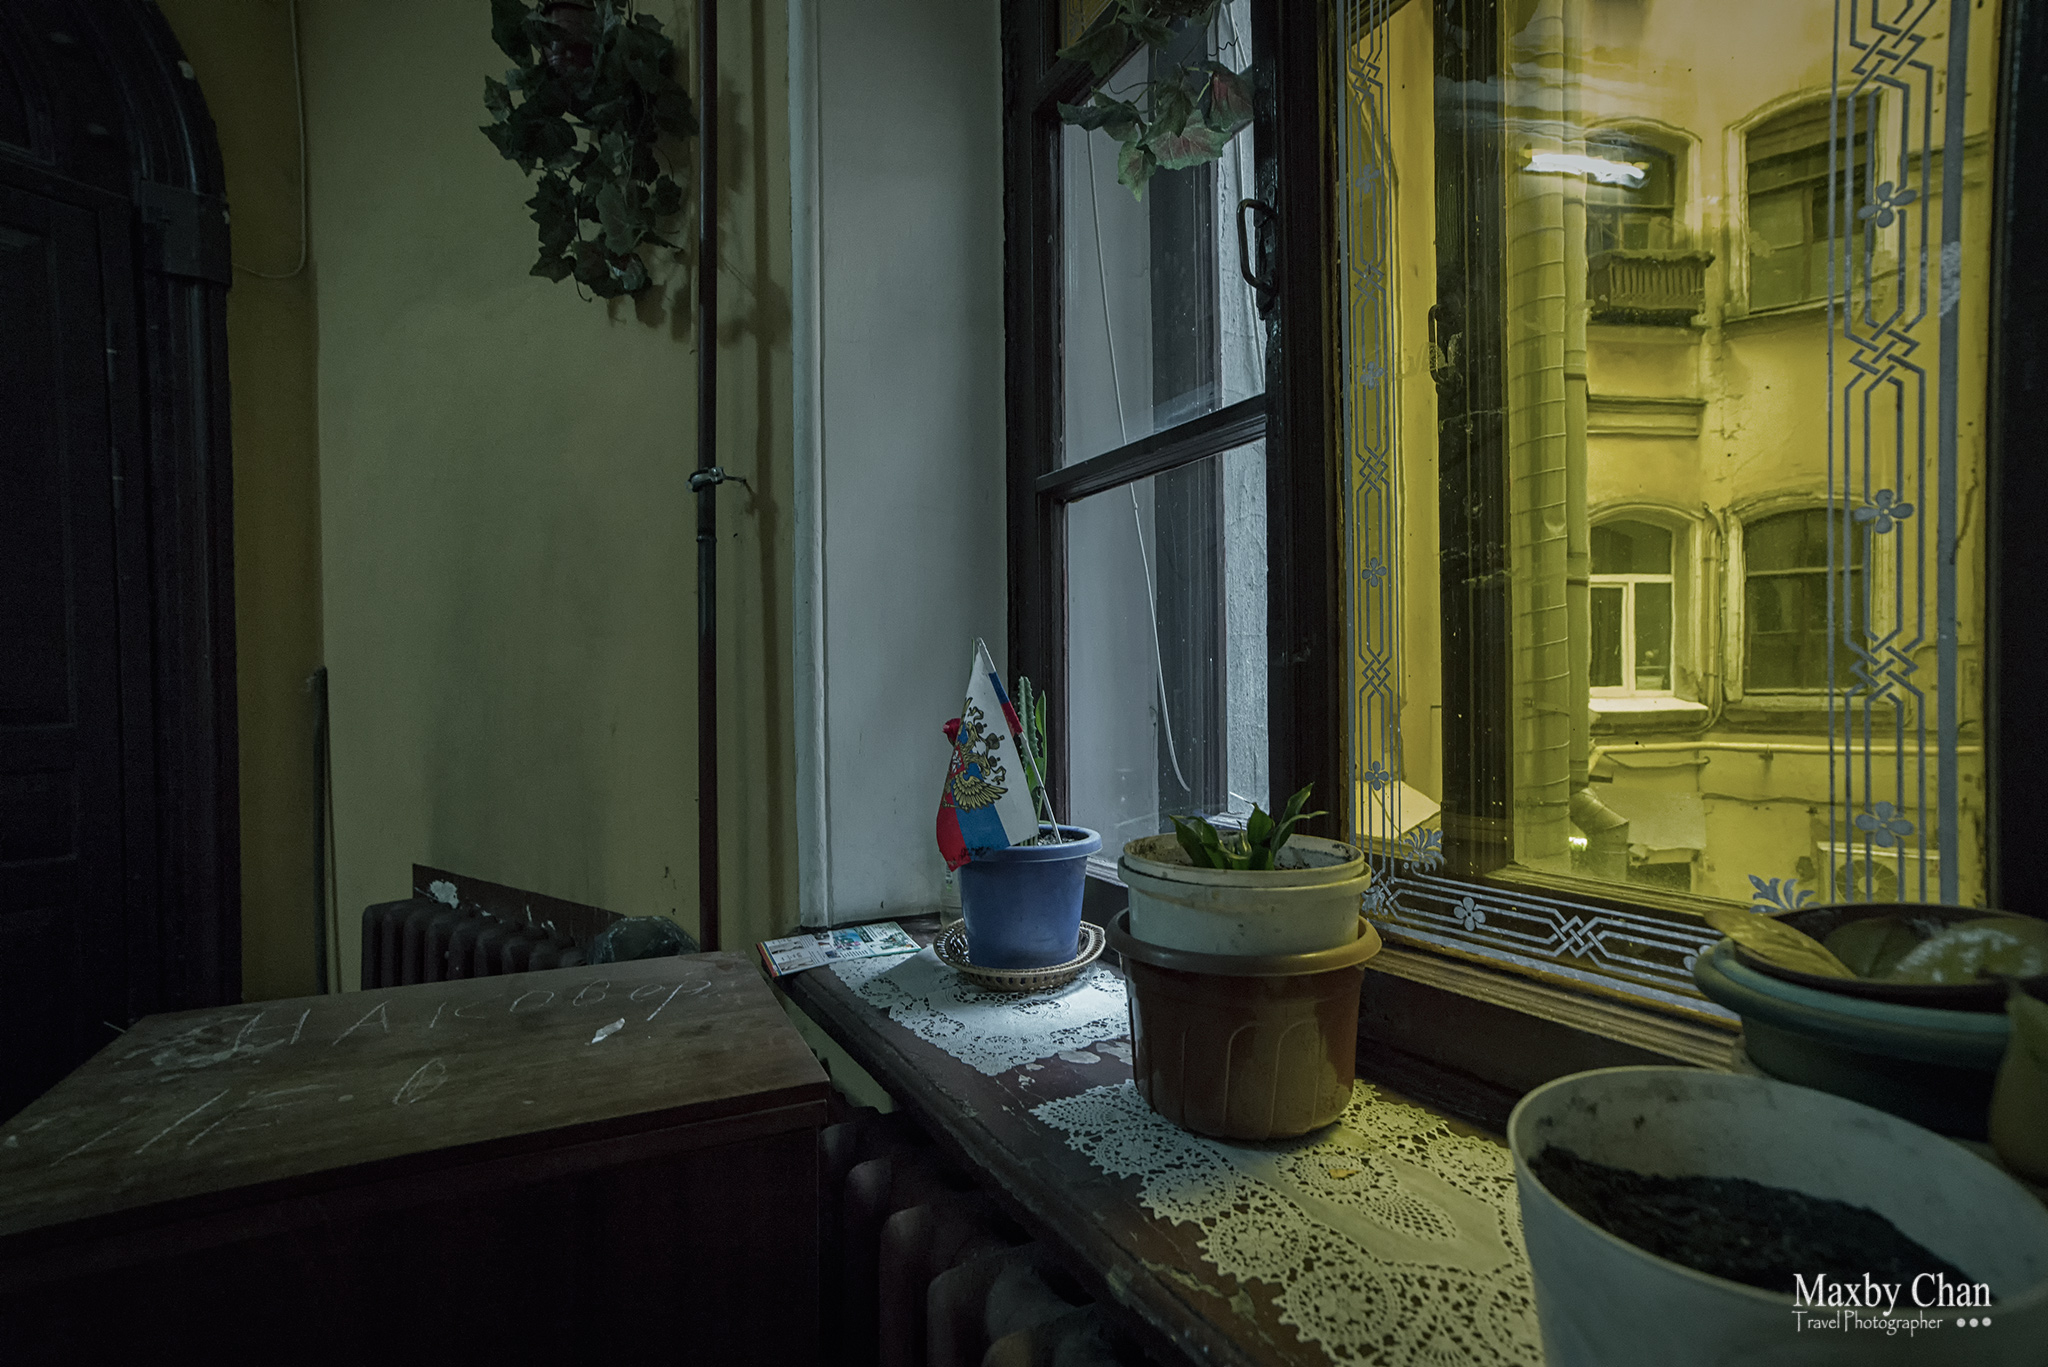 Inside the tenement